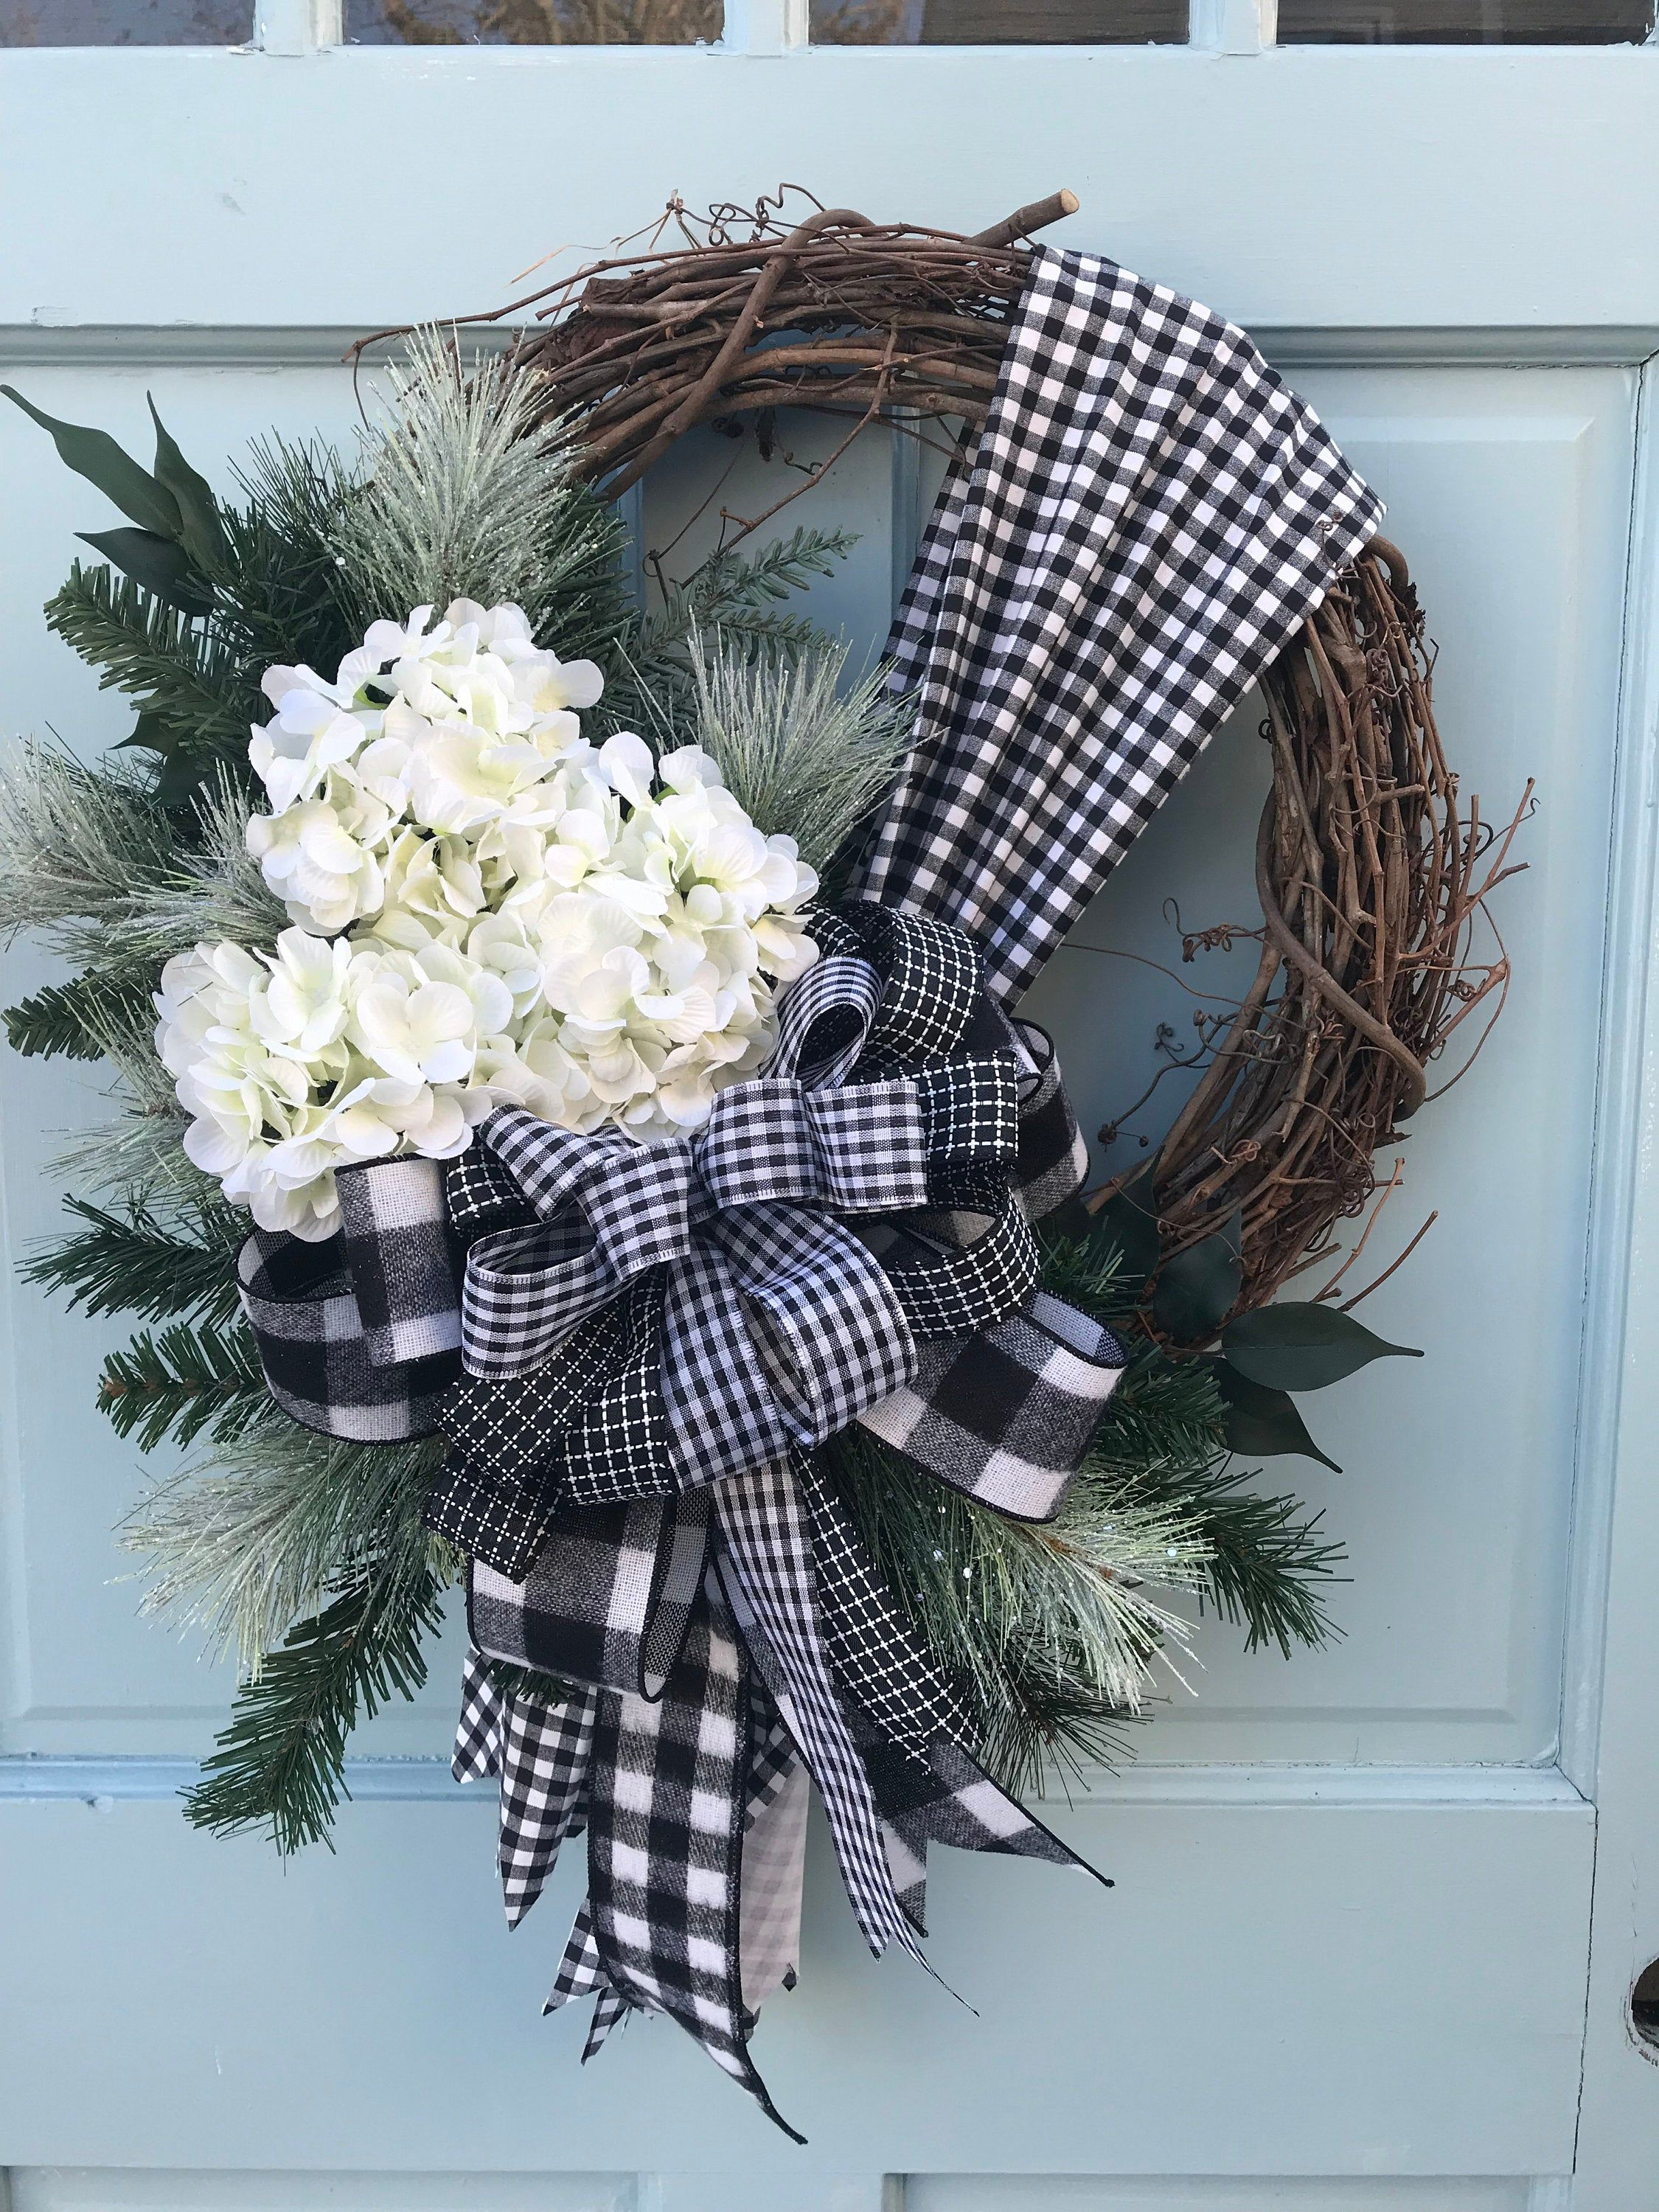 All Winter Long Farmhouse Grapevine Wreath For Door With Black And White Plaid Bow Wreaths For Front Doo In 2020 Grapevine Wreath Wreaths For Front Door Door Wreaths